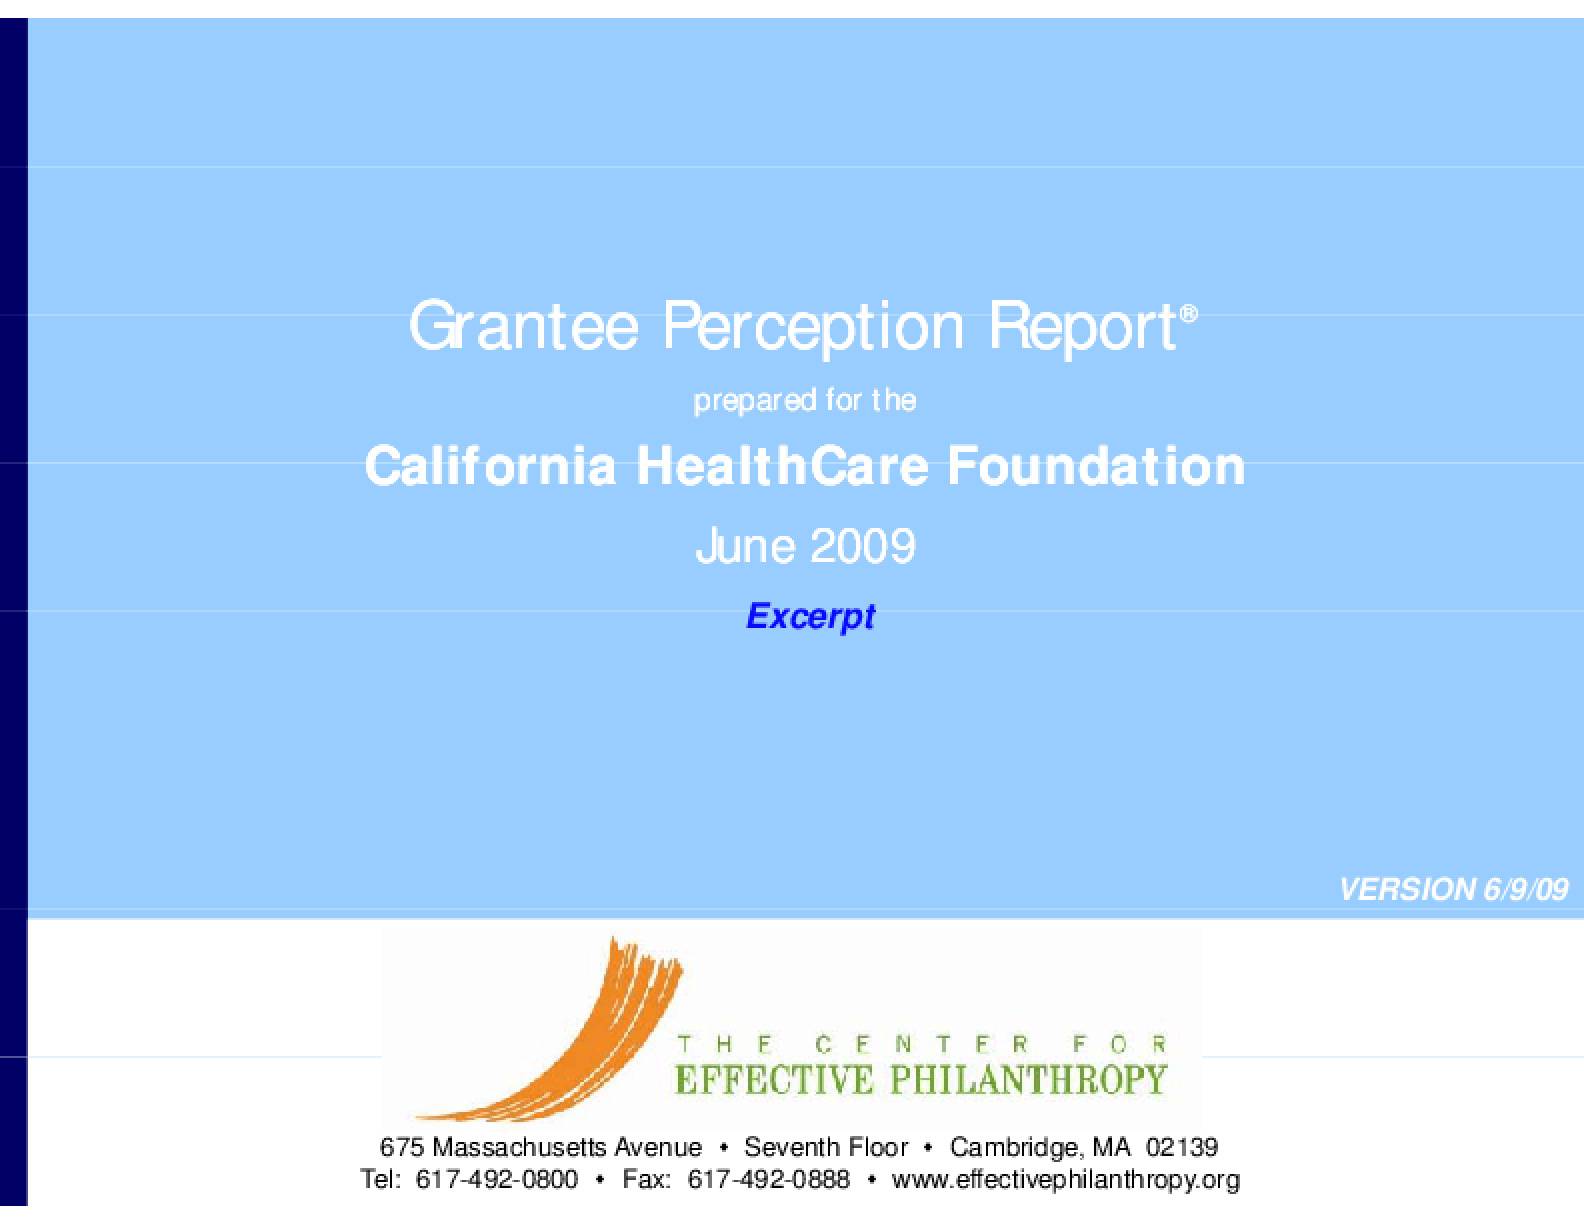 Grantee Perception Report: California HealthCare Foundation